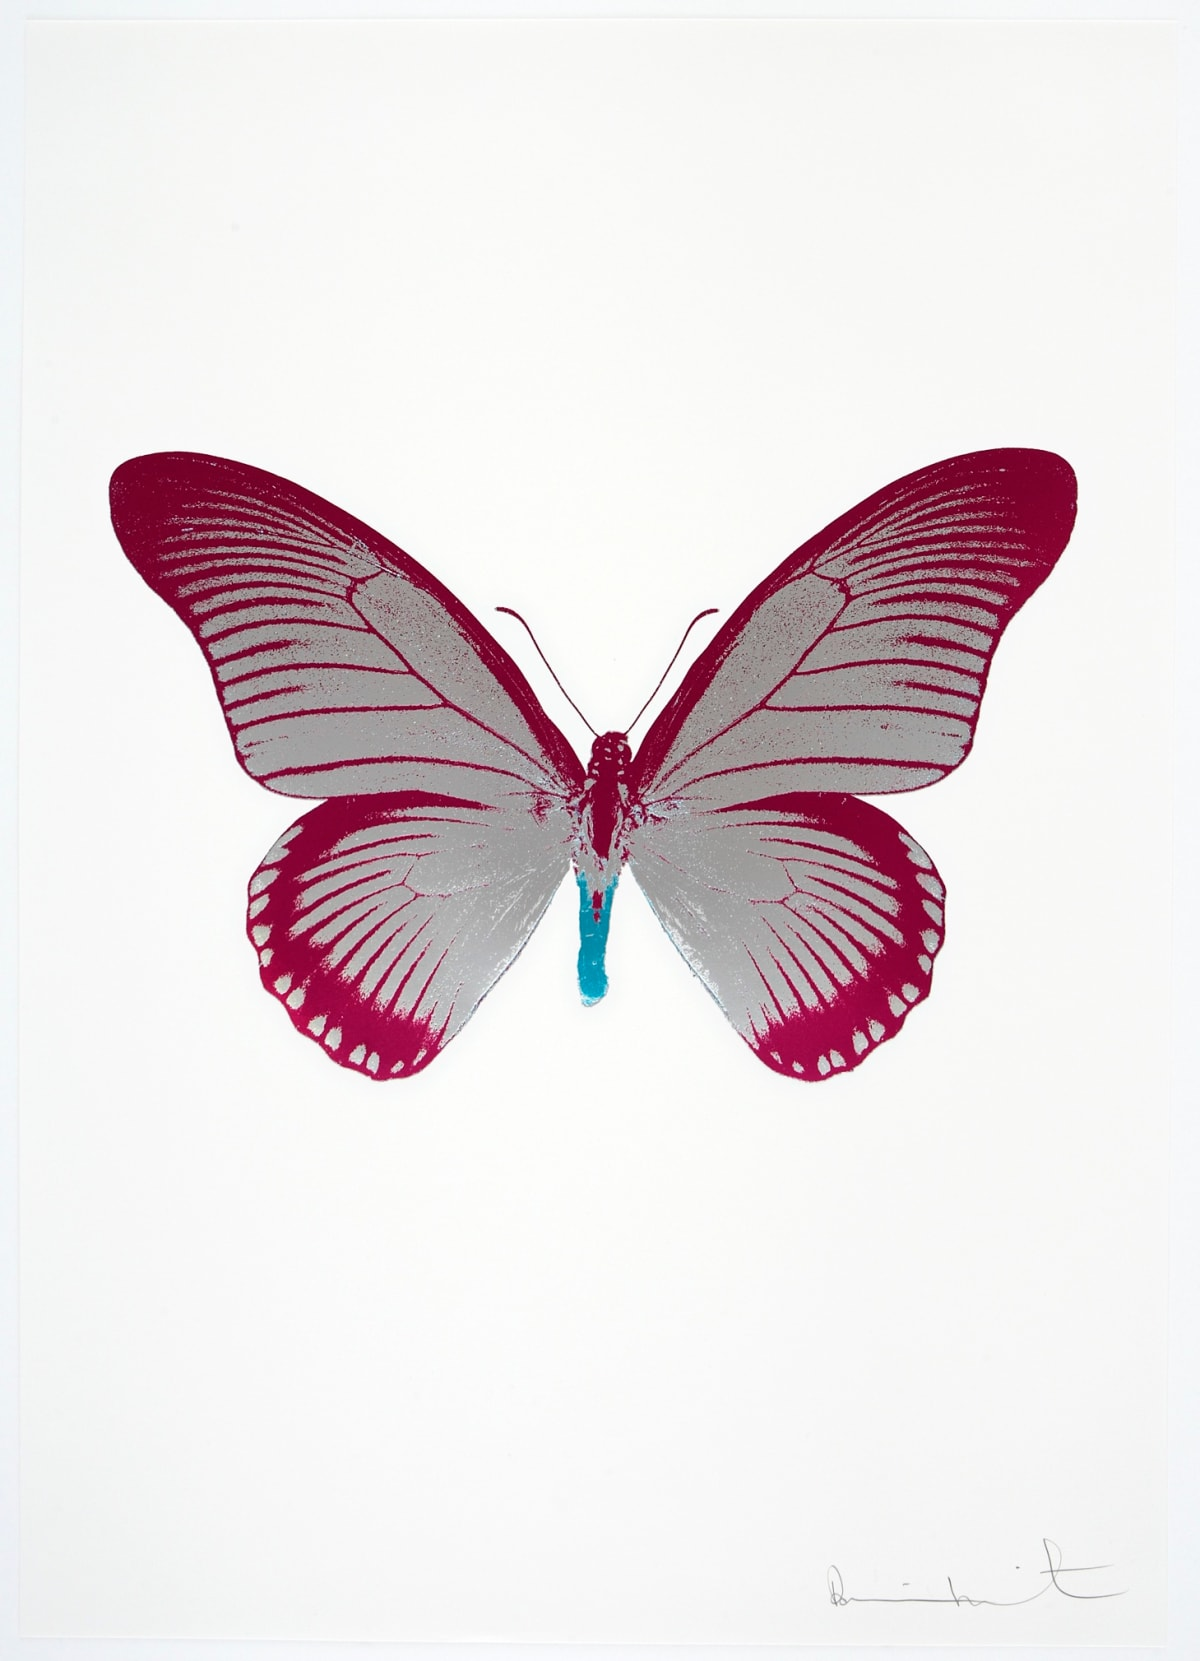 Damien Hirst The Souls IV - Silver Gloss/Fuchsia Pink/Topaz Damien Hirst butterfly foil print for sale Damien Hirst print for sale , 2010 3 colour foil block on 300gsm Arches 88 archival paper. Signed and numbered. Published by Paul Stolper and Other Criteria 72 x 51cm OC8029 / 1418-52 Edition of 15